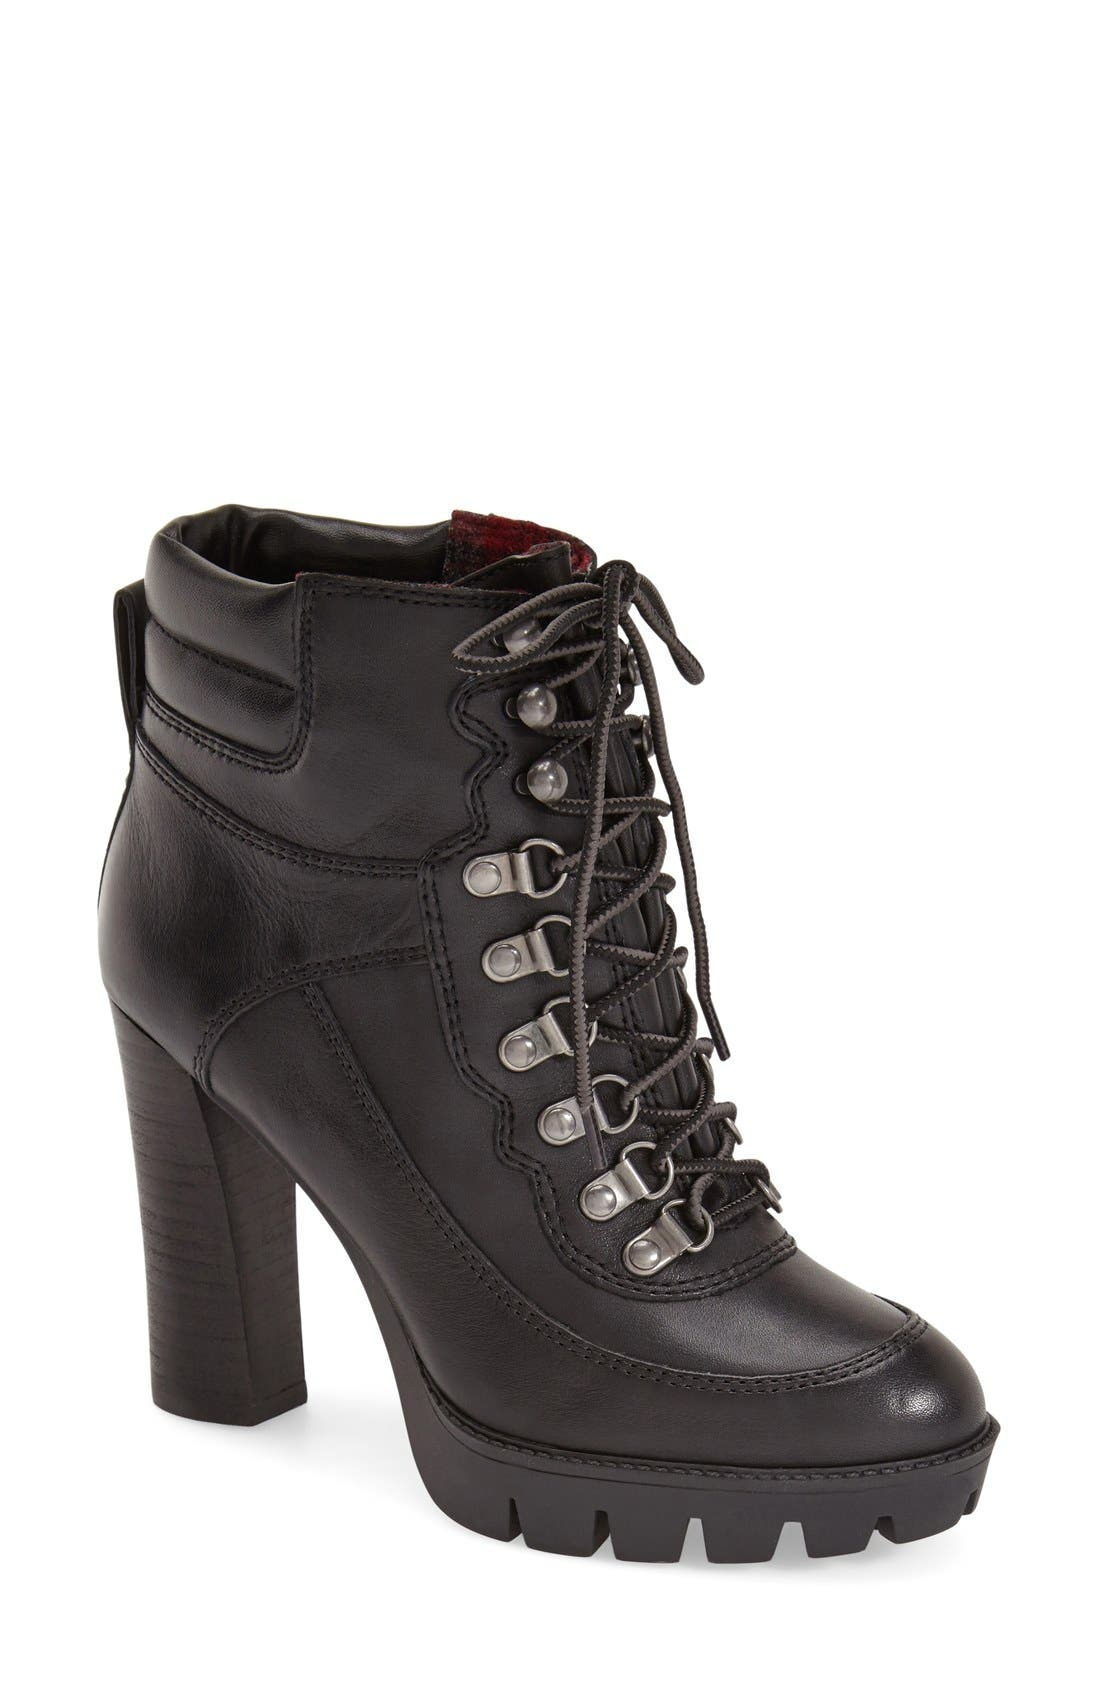 Main Image - Nine West 'Abrial' Lace-Up Bootie (Women)